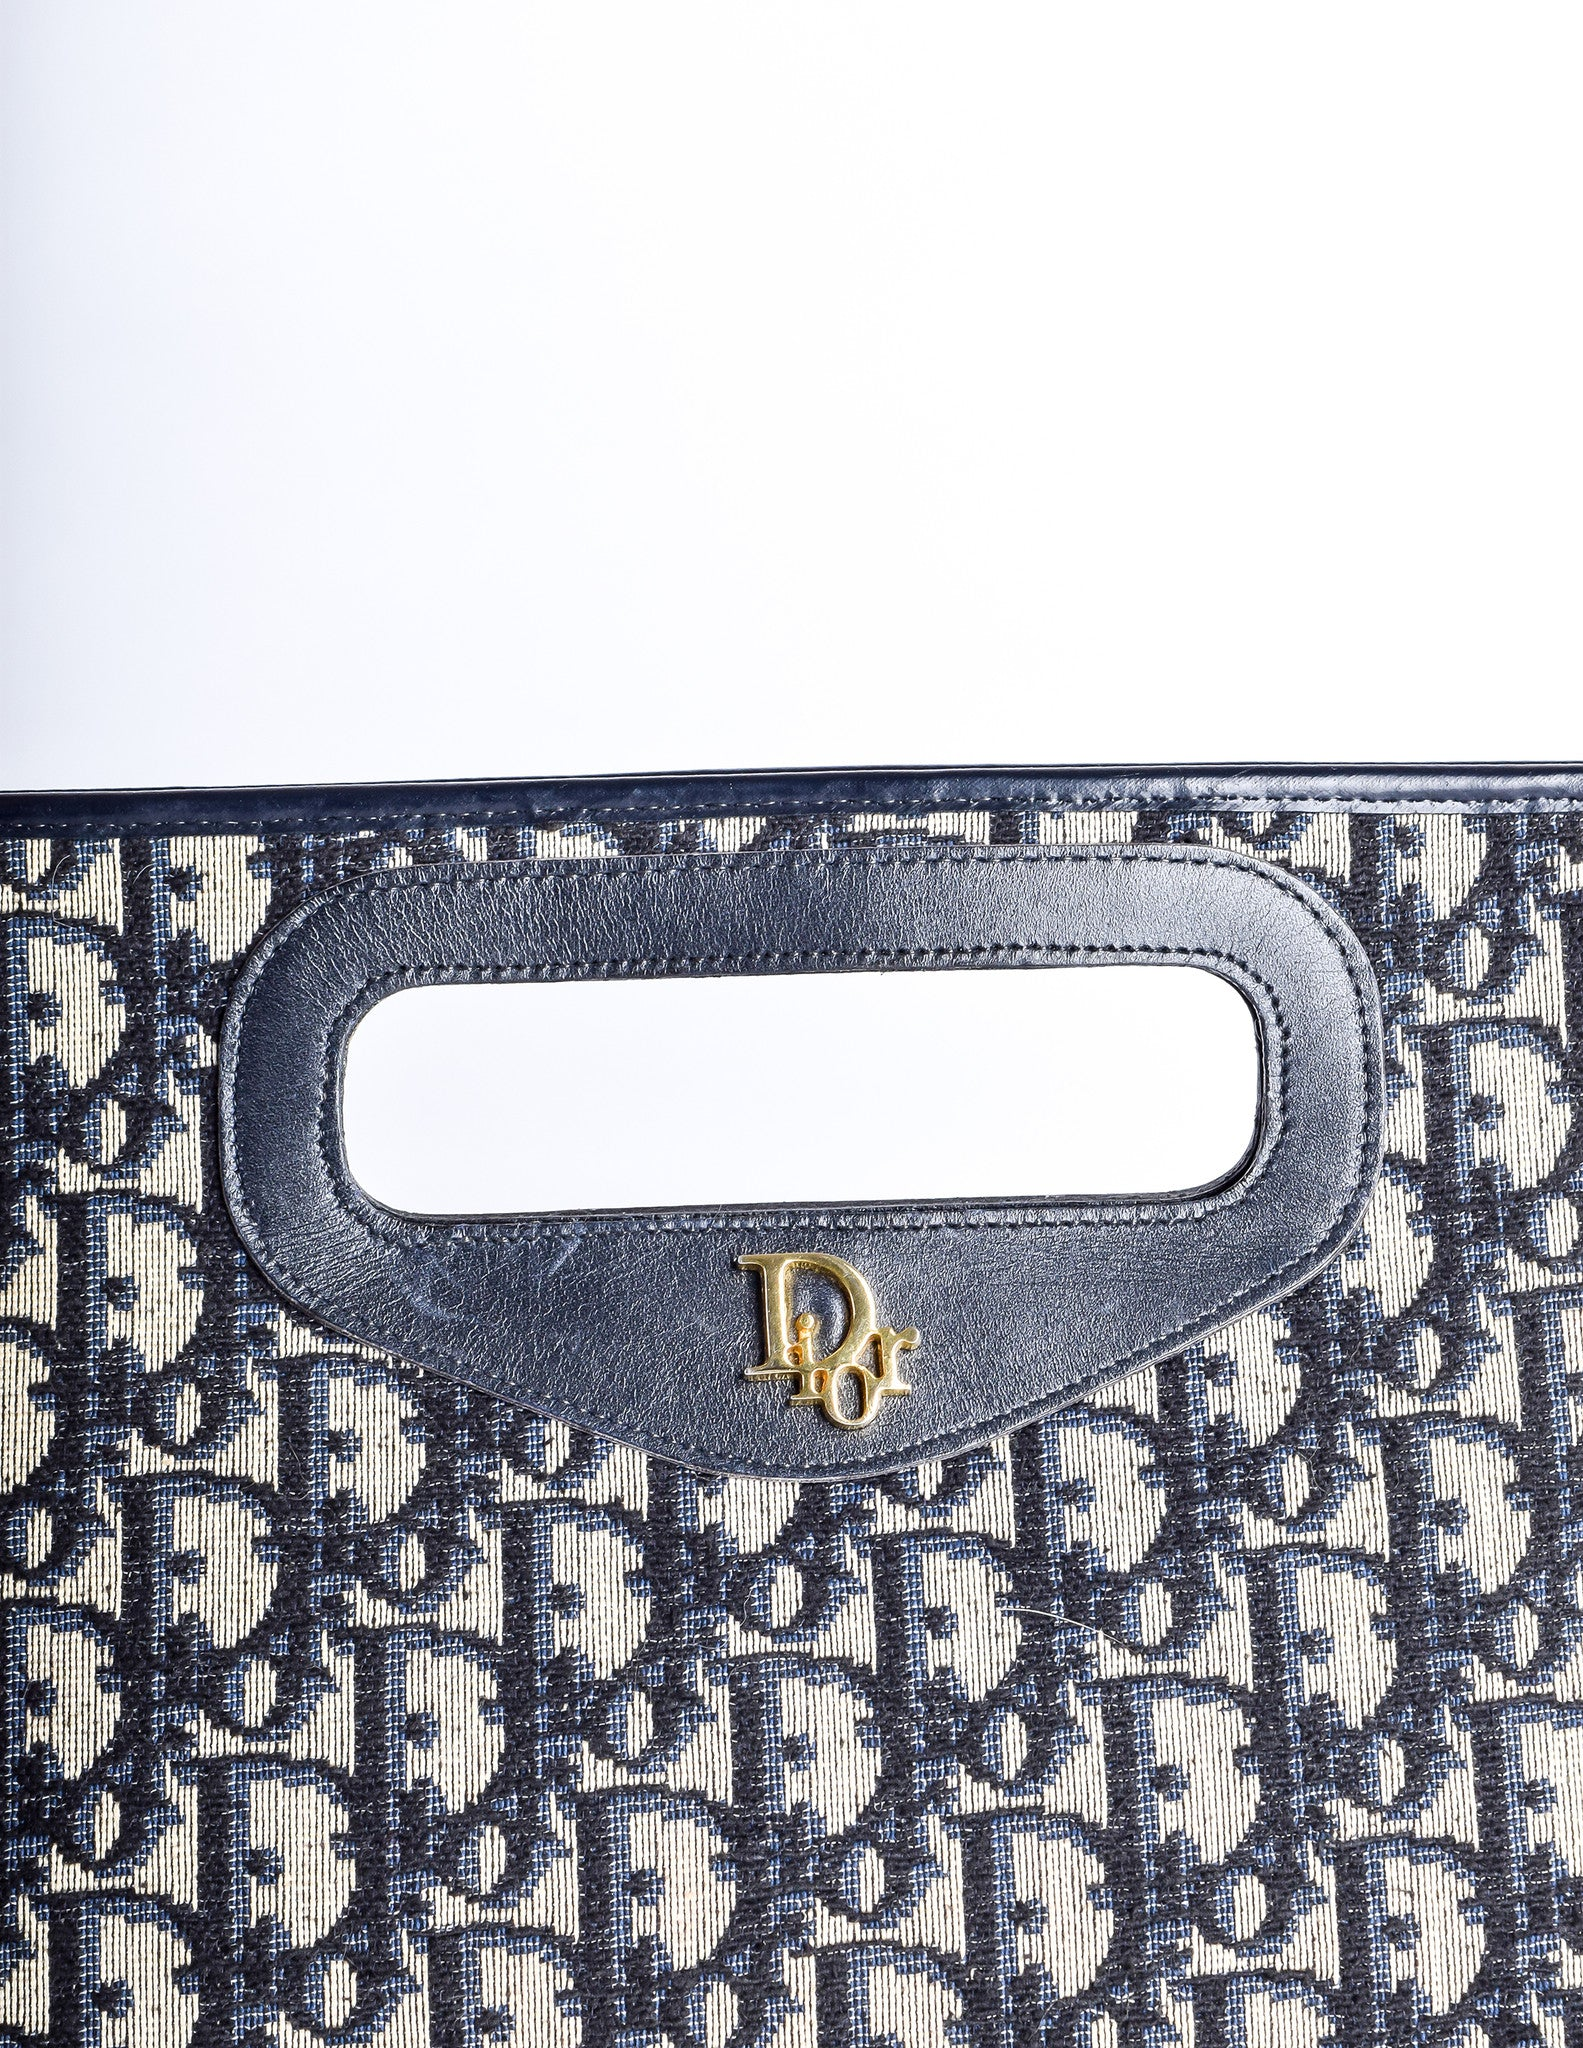 67cc9ba4416 Christian Dior Vintage Navy Blue Monogram Canvas & Leather Bag - Amarcord  Vintage Fashion - 5